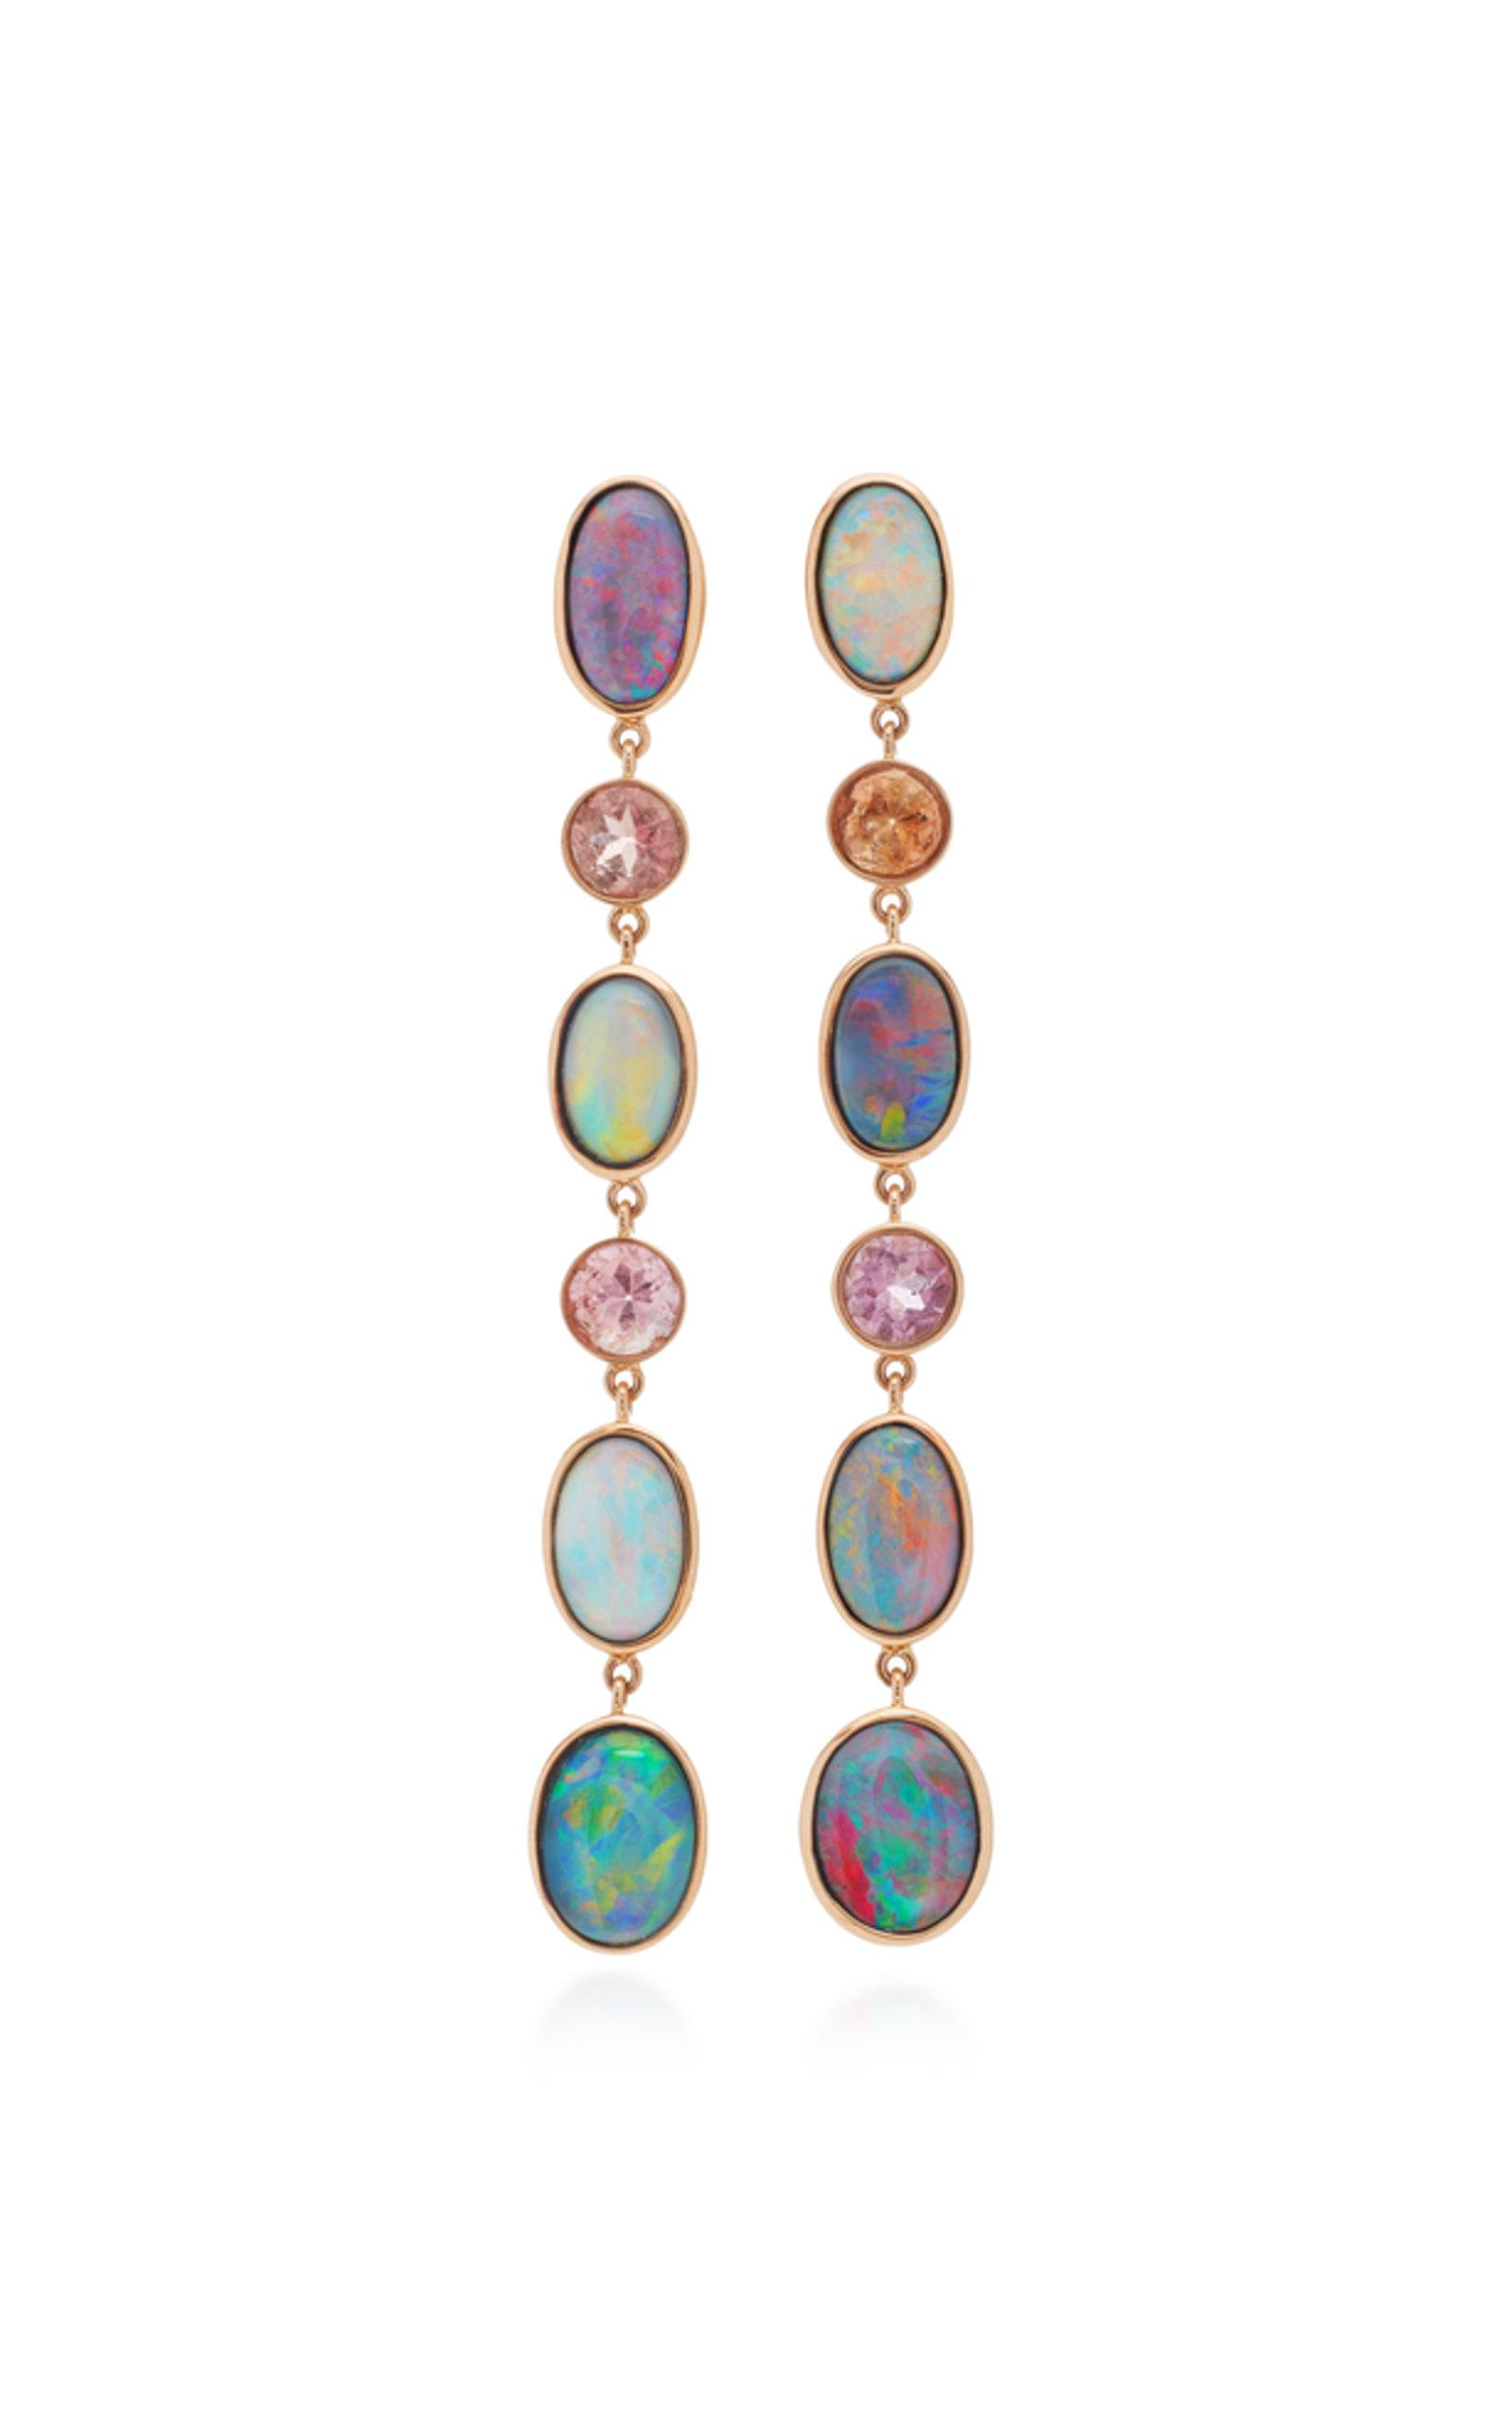 One-Of-A-Kind Black Opal And Pastel Tourmaline Hoops Katherine Jetter